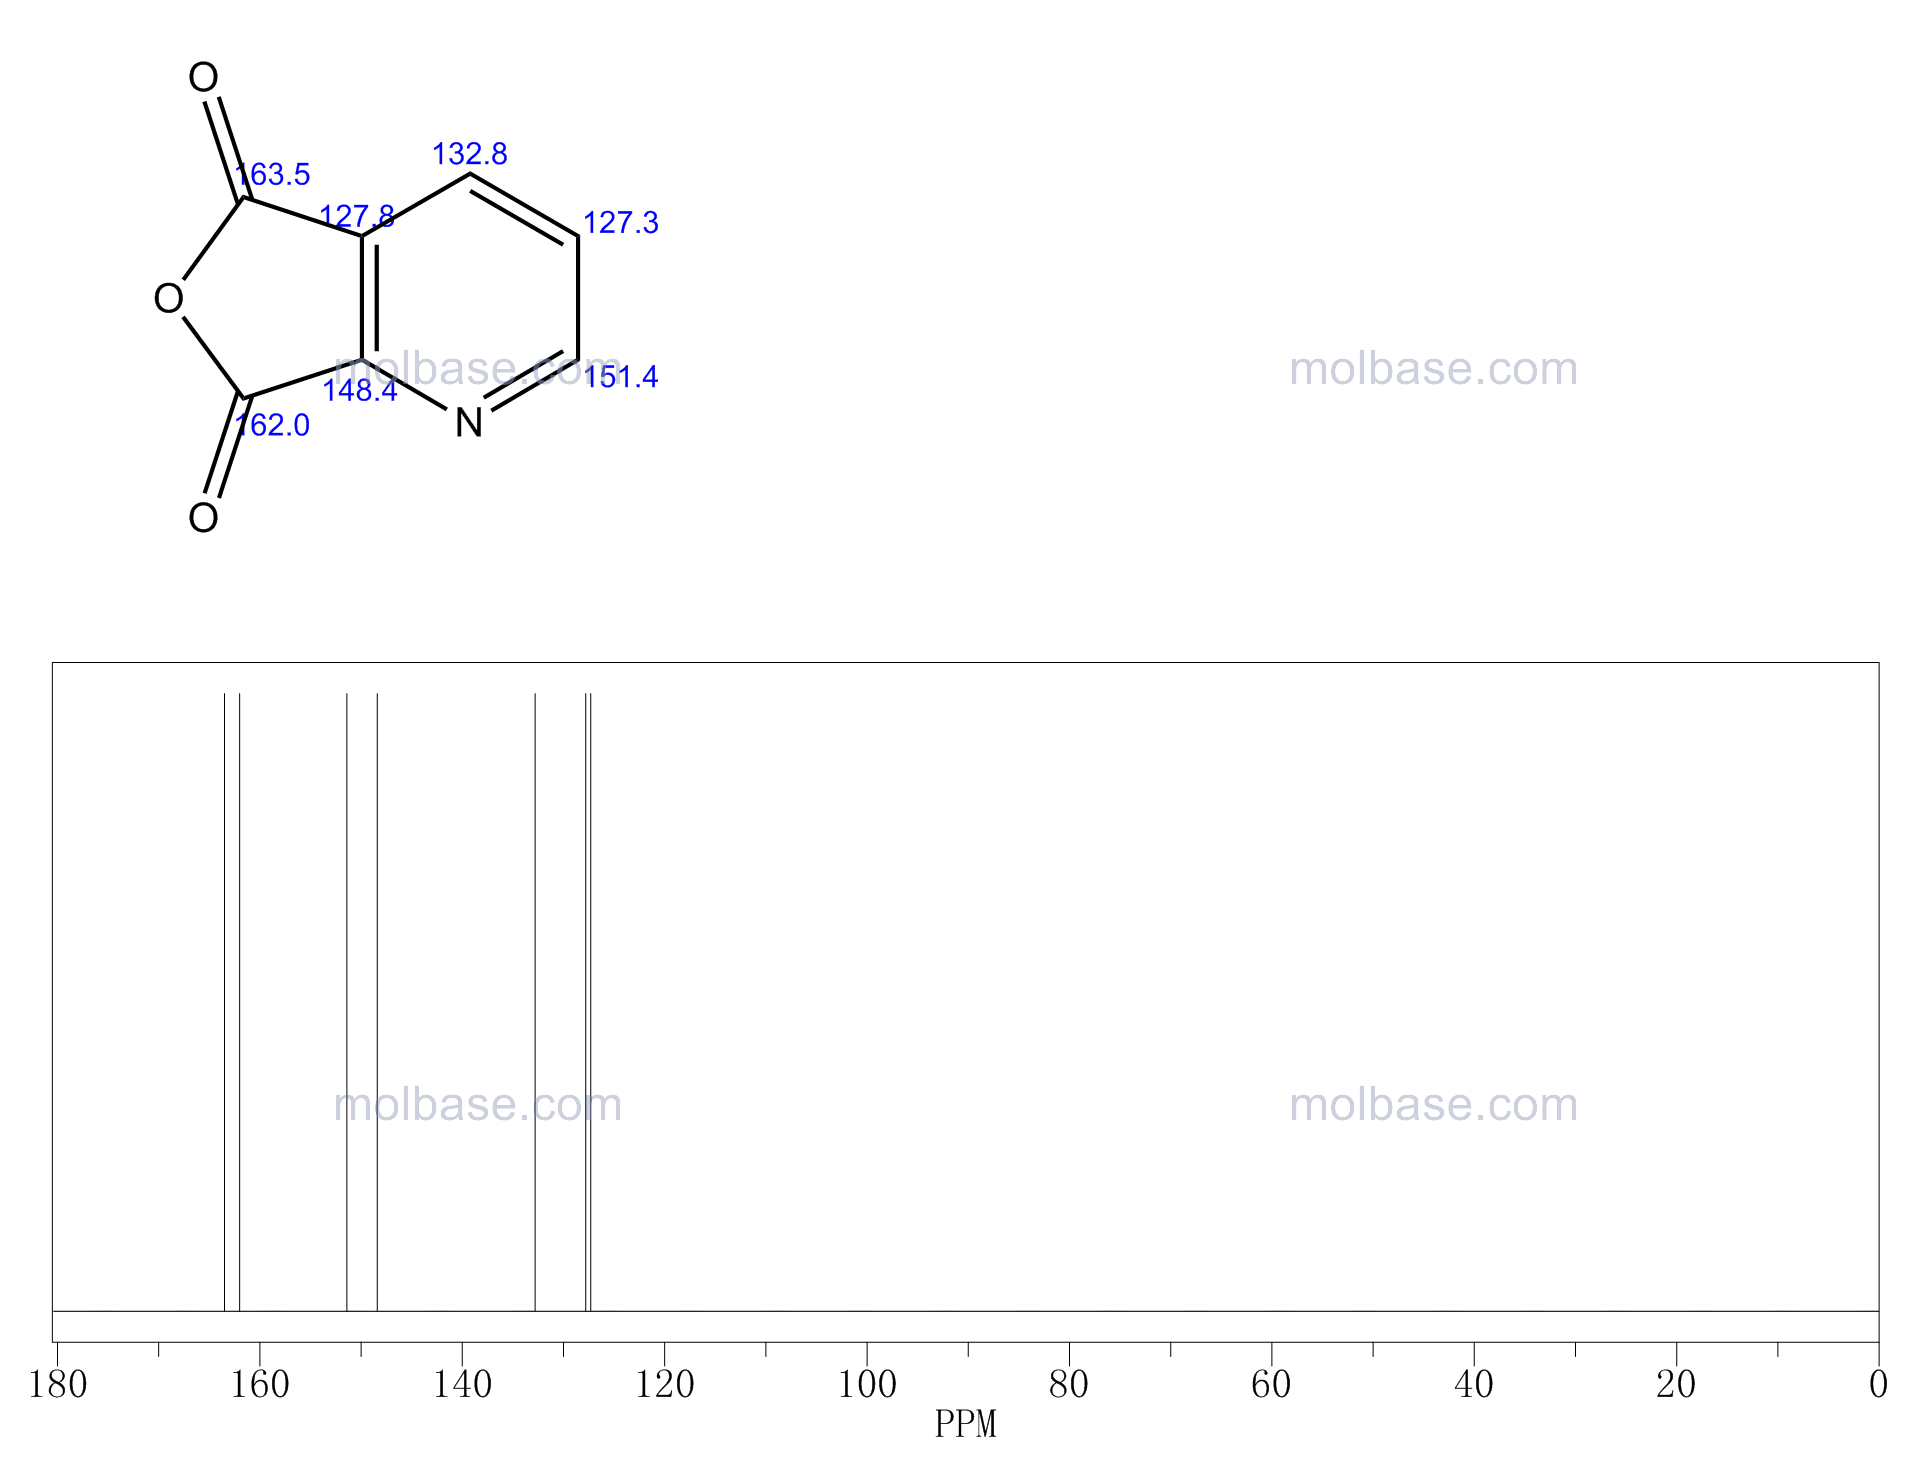 2,3-Pyridinedicarboxylic anhydride NMR spectra analysis, Chemical CAS NO. 699-98-9 NMR spectral analysis, 2,3-Pyridinedicarboxylic anhydride C-NMR spectrum